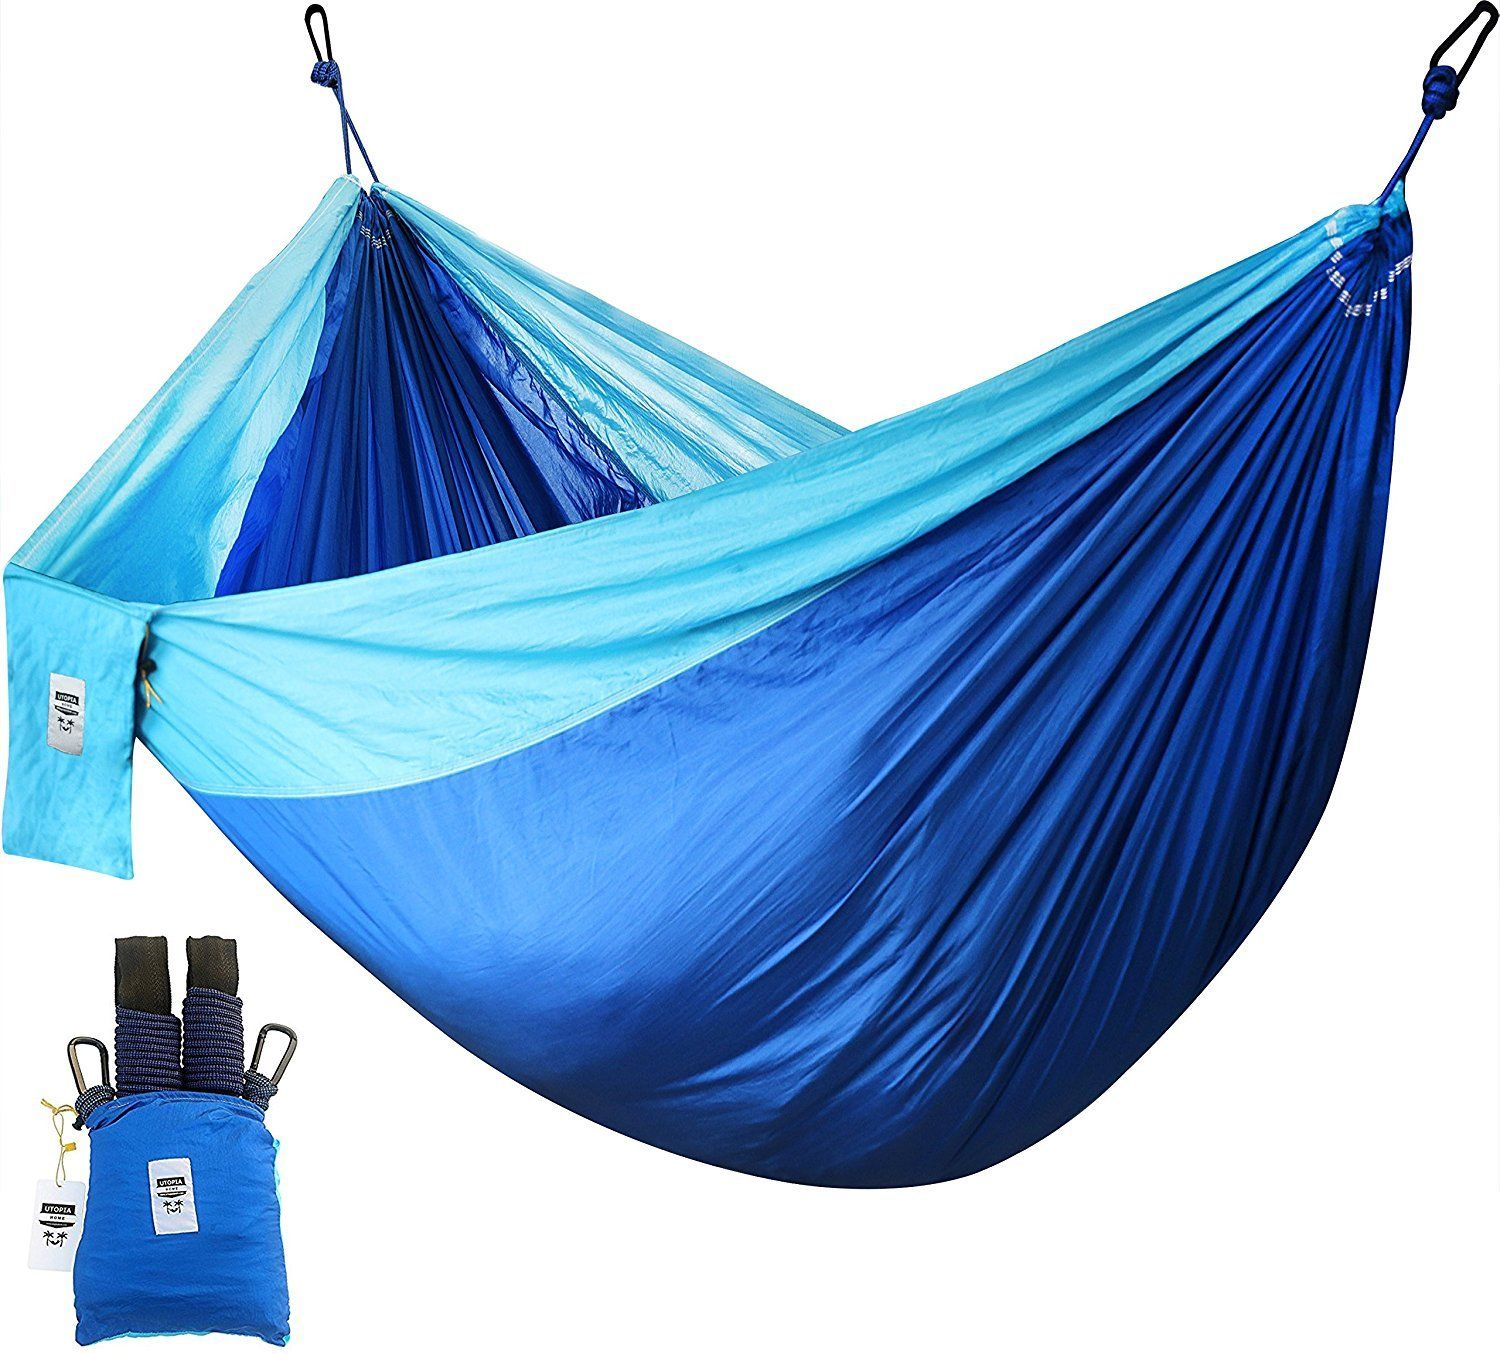 GHP 200-Kg Capacity Supreme Nylon Fabric Outdoor Camping Hammock w 2 Hanging Straps